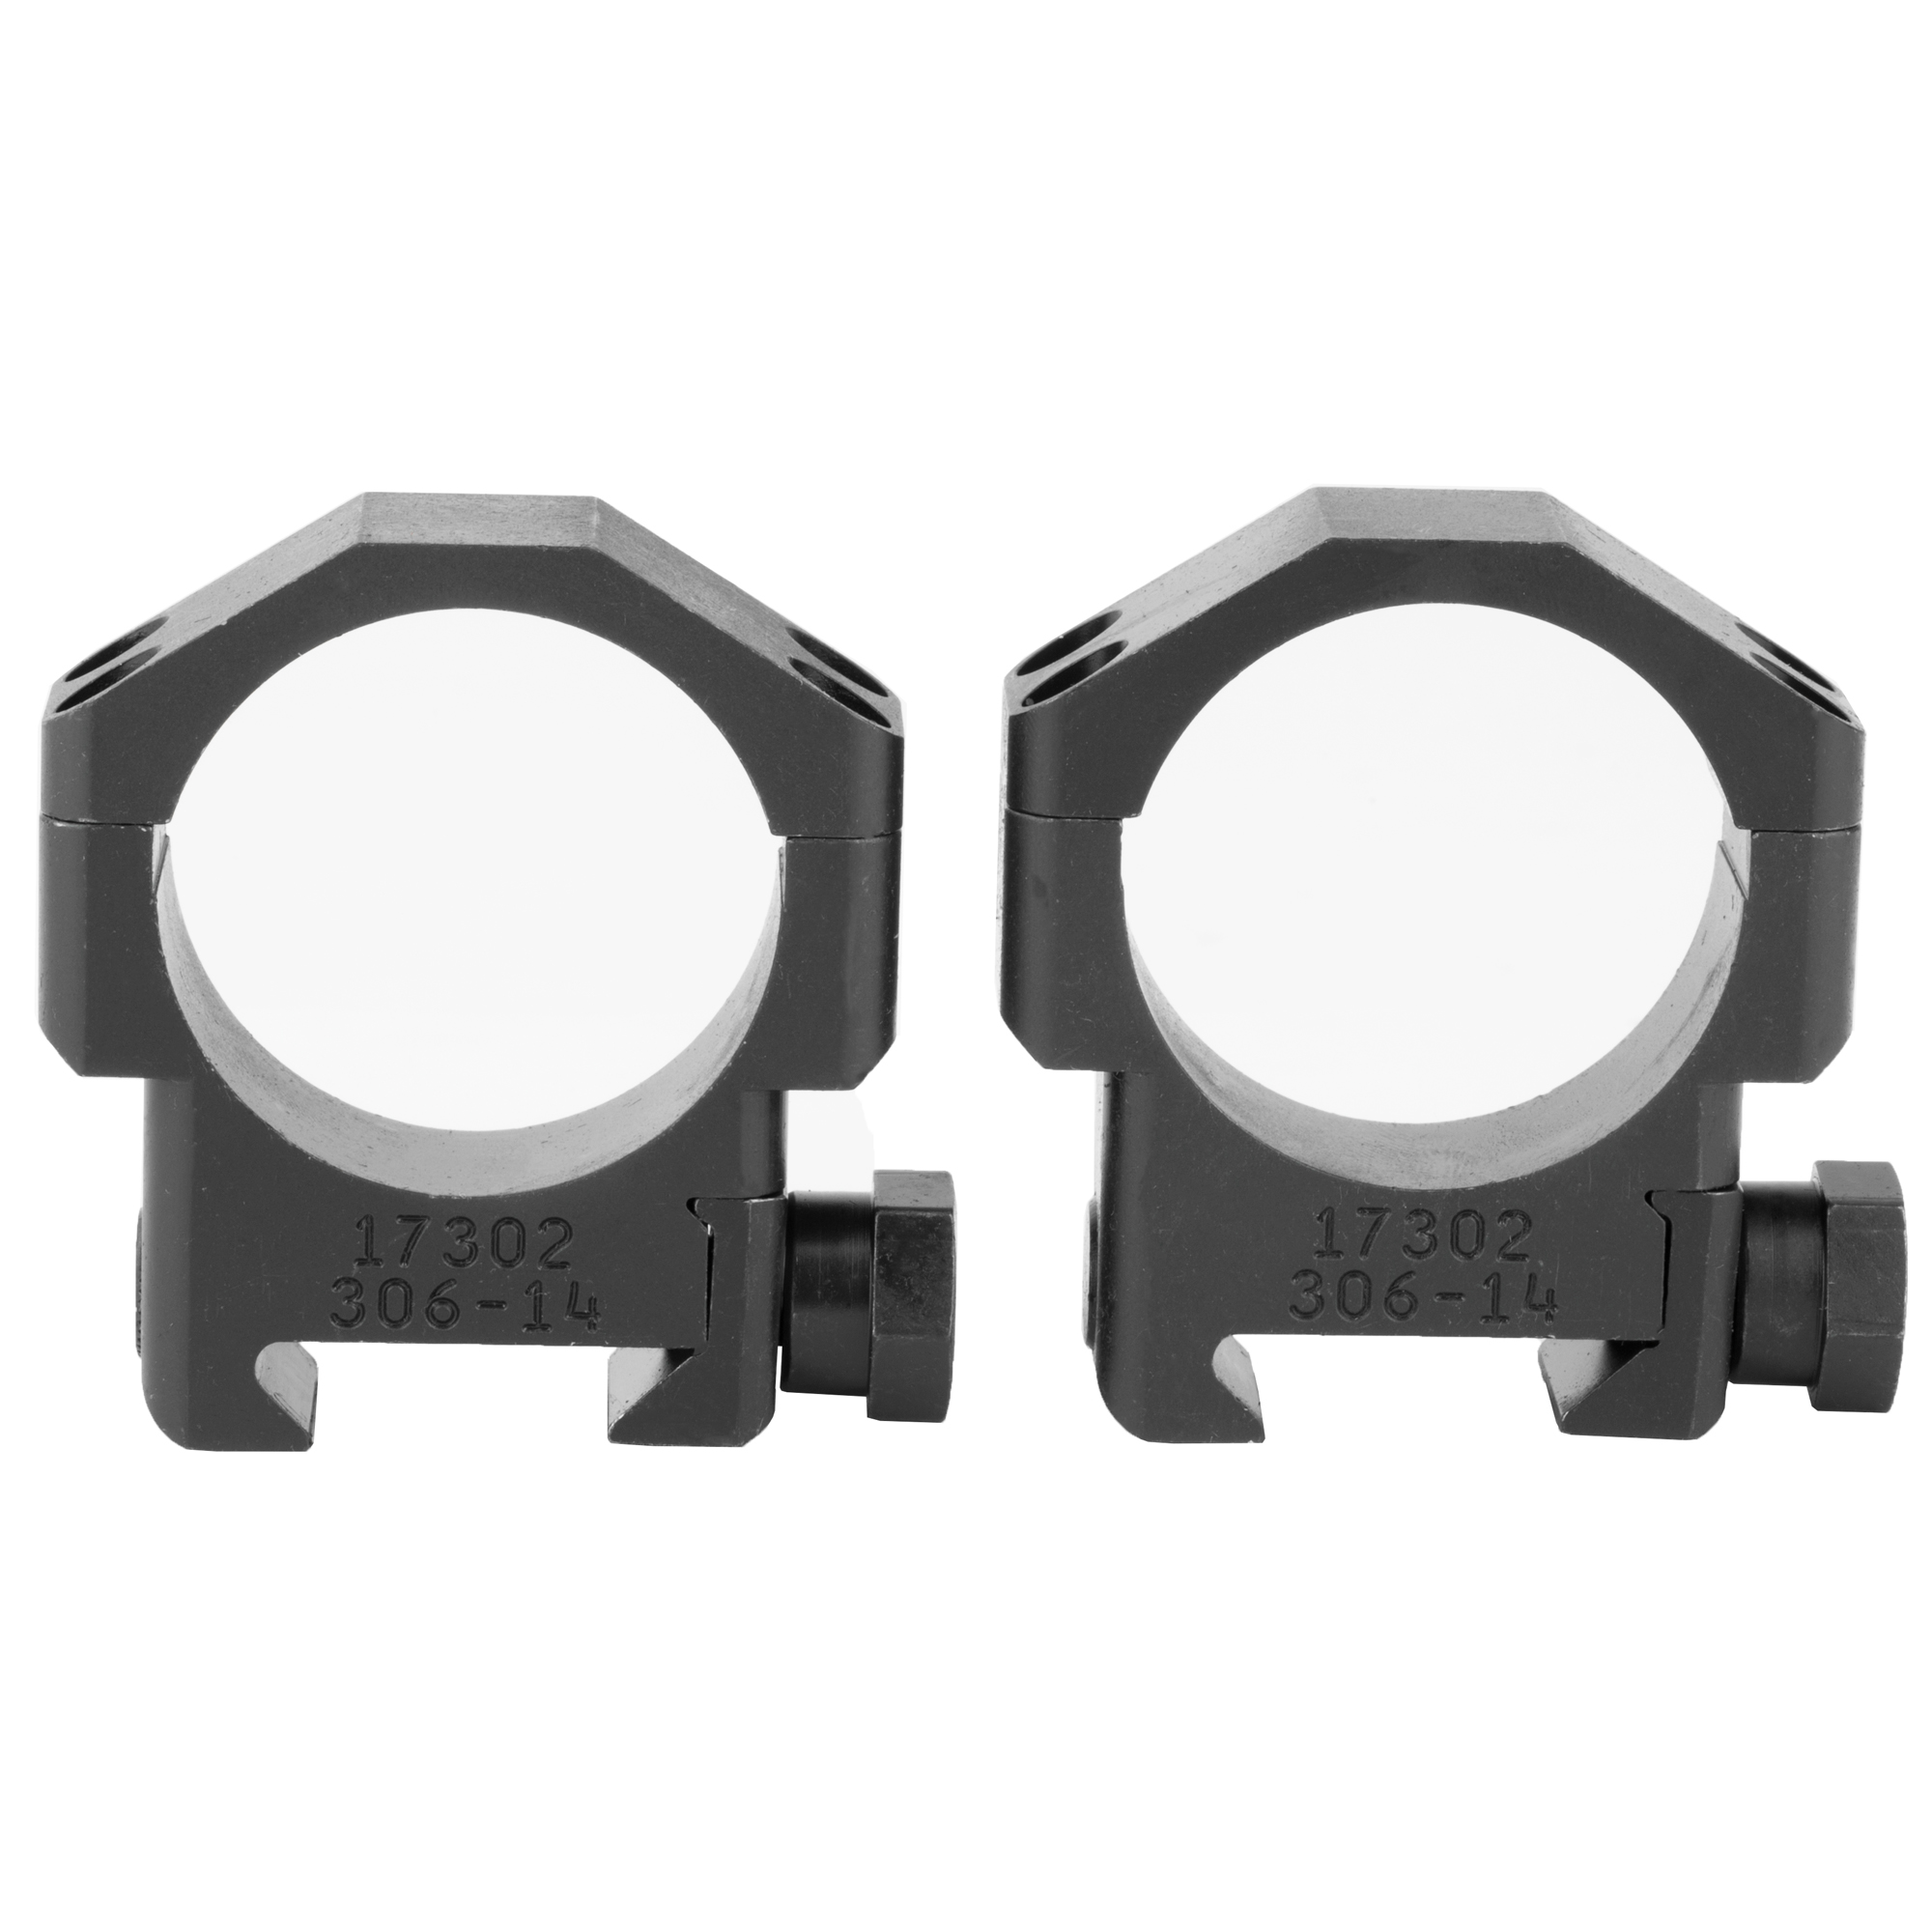 The Badger Ordnance 30mm High Scope Rings are optimized for use with current 30mm optics and accommodate precision rifles with mid to heavy barrel profiles. They are machined from 6061 Alloy and Mil Spec Type III Hardcoat Anodized.